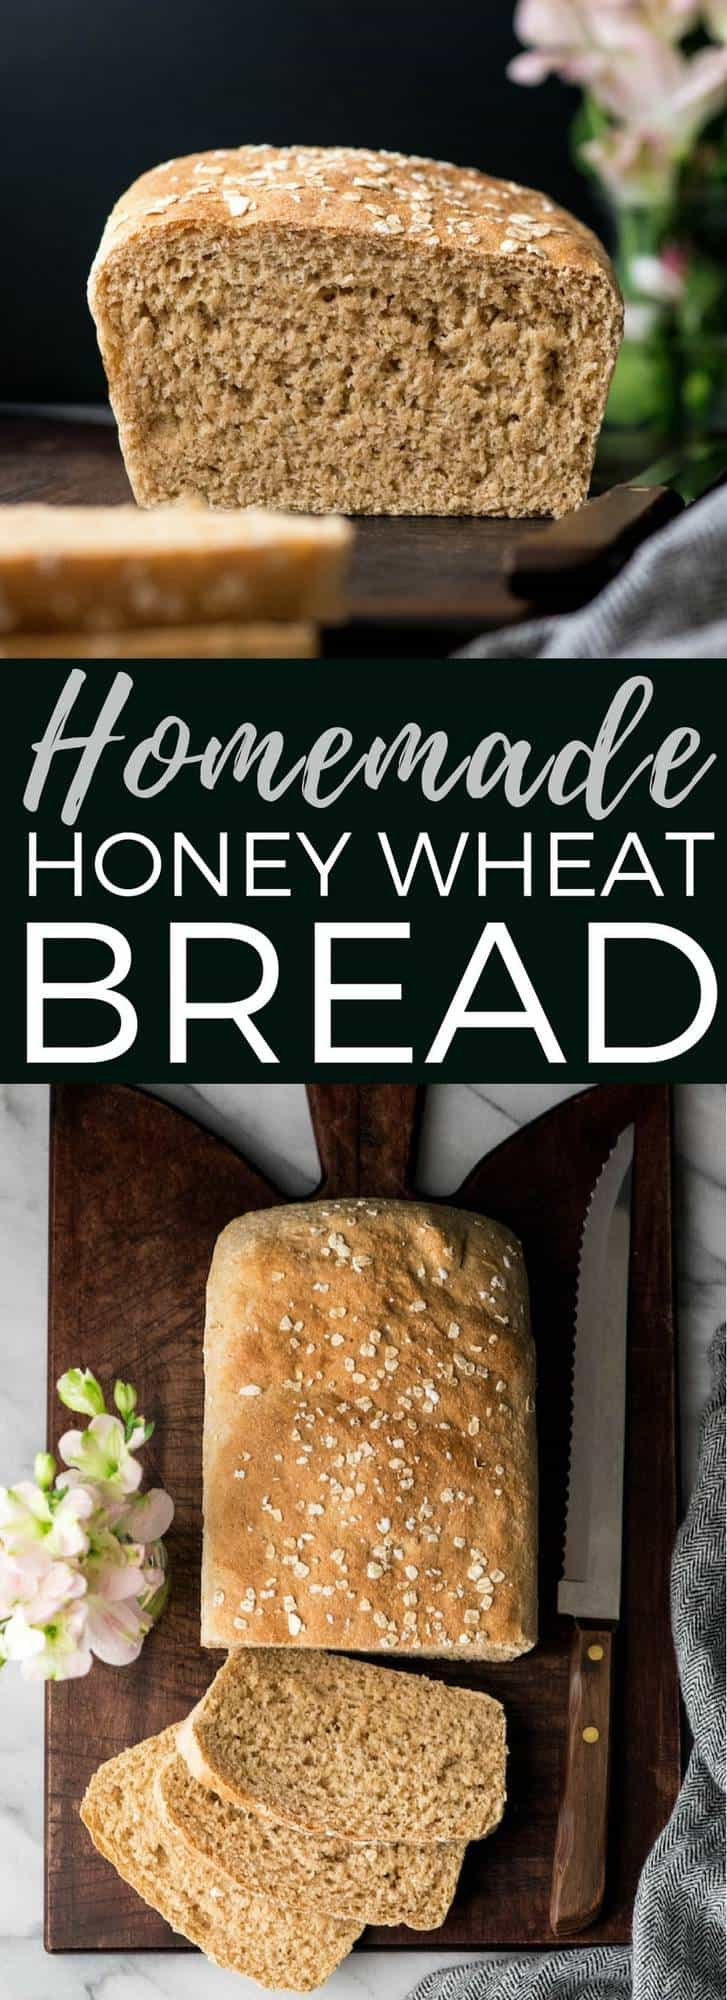 Homemade Honey Whole Wheat Bread is a dairy-free recipe that is perfect for sandwiches and toast! It's a straightforward, classic loaf of dense, sweet bread that's made with only 8 ingredients! #homemadebread #bread #wholewheat #wholewheatbread #honey